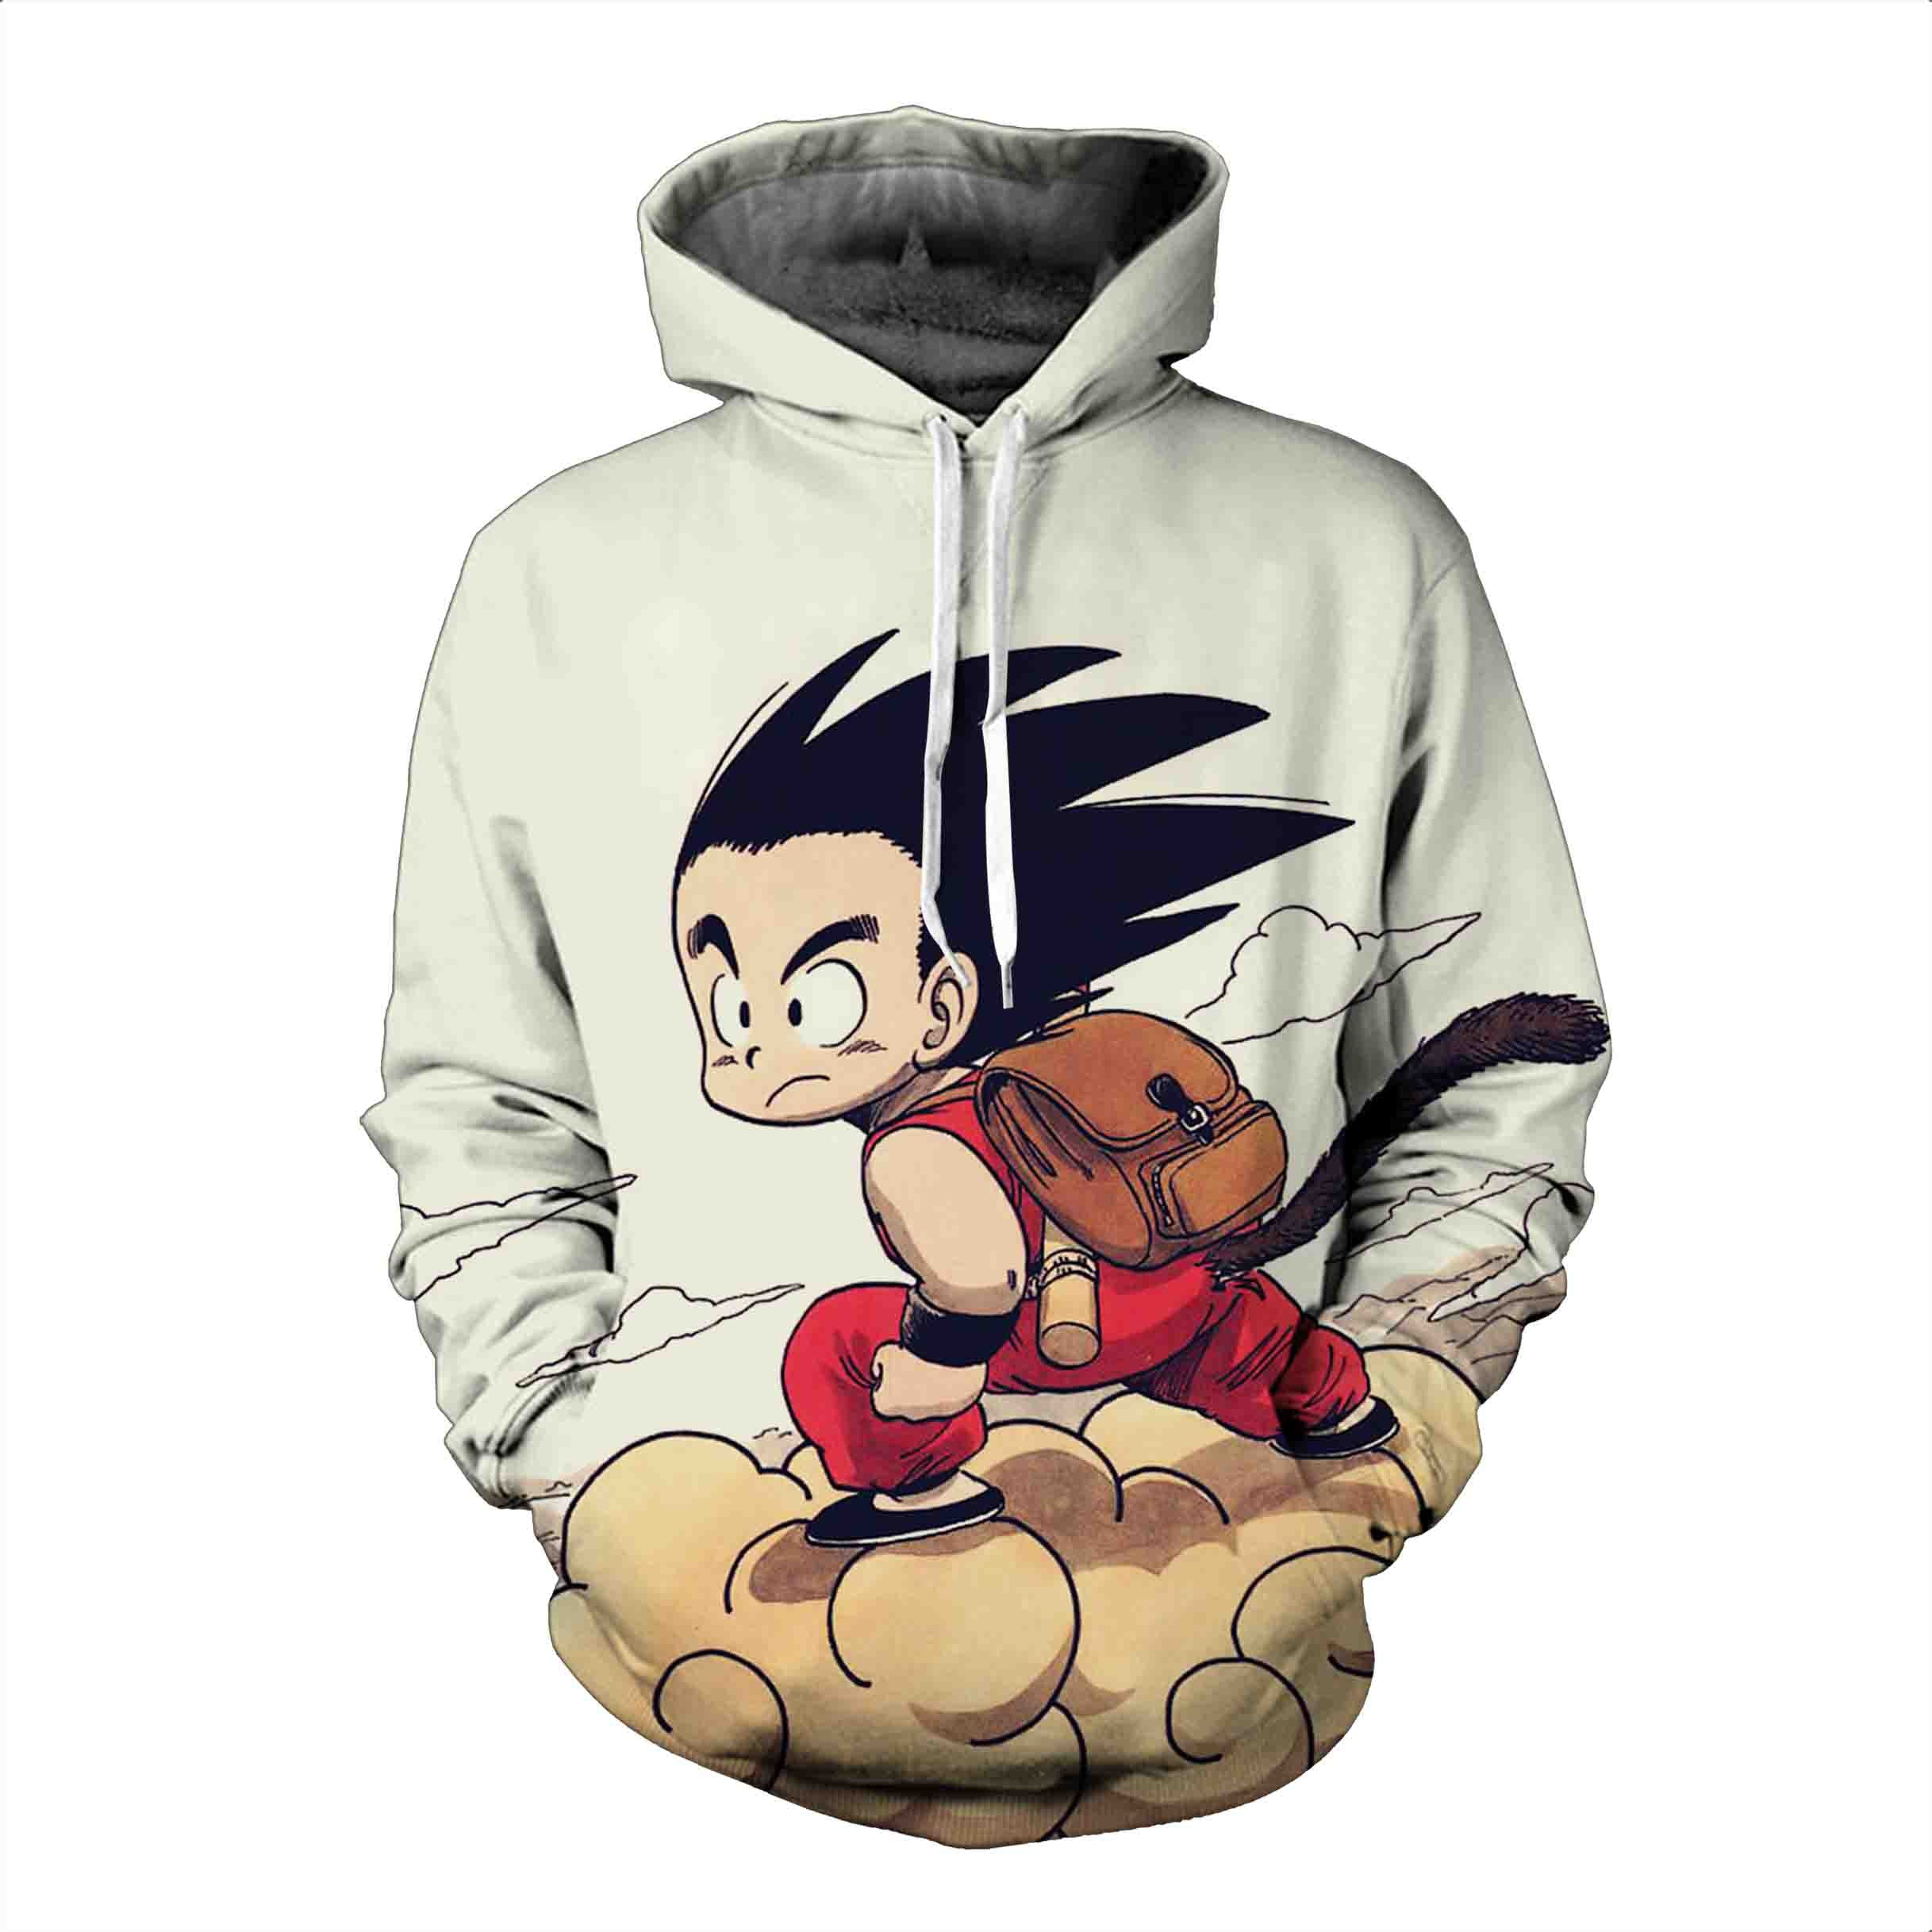 Dragon Ball Hoodies, 3D Clear Print, Best Quality : Design 6125